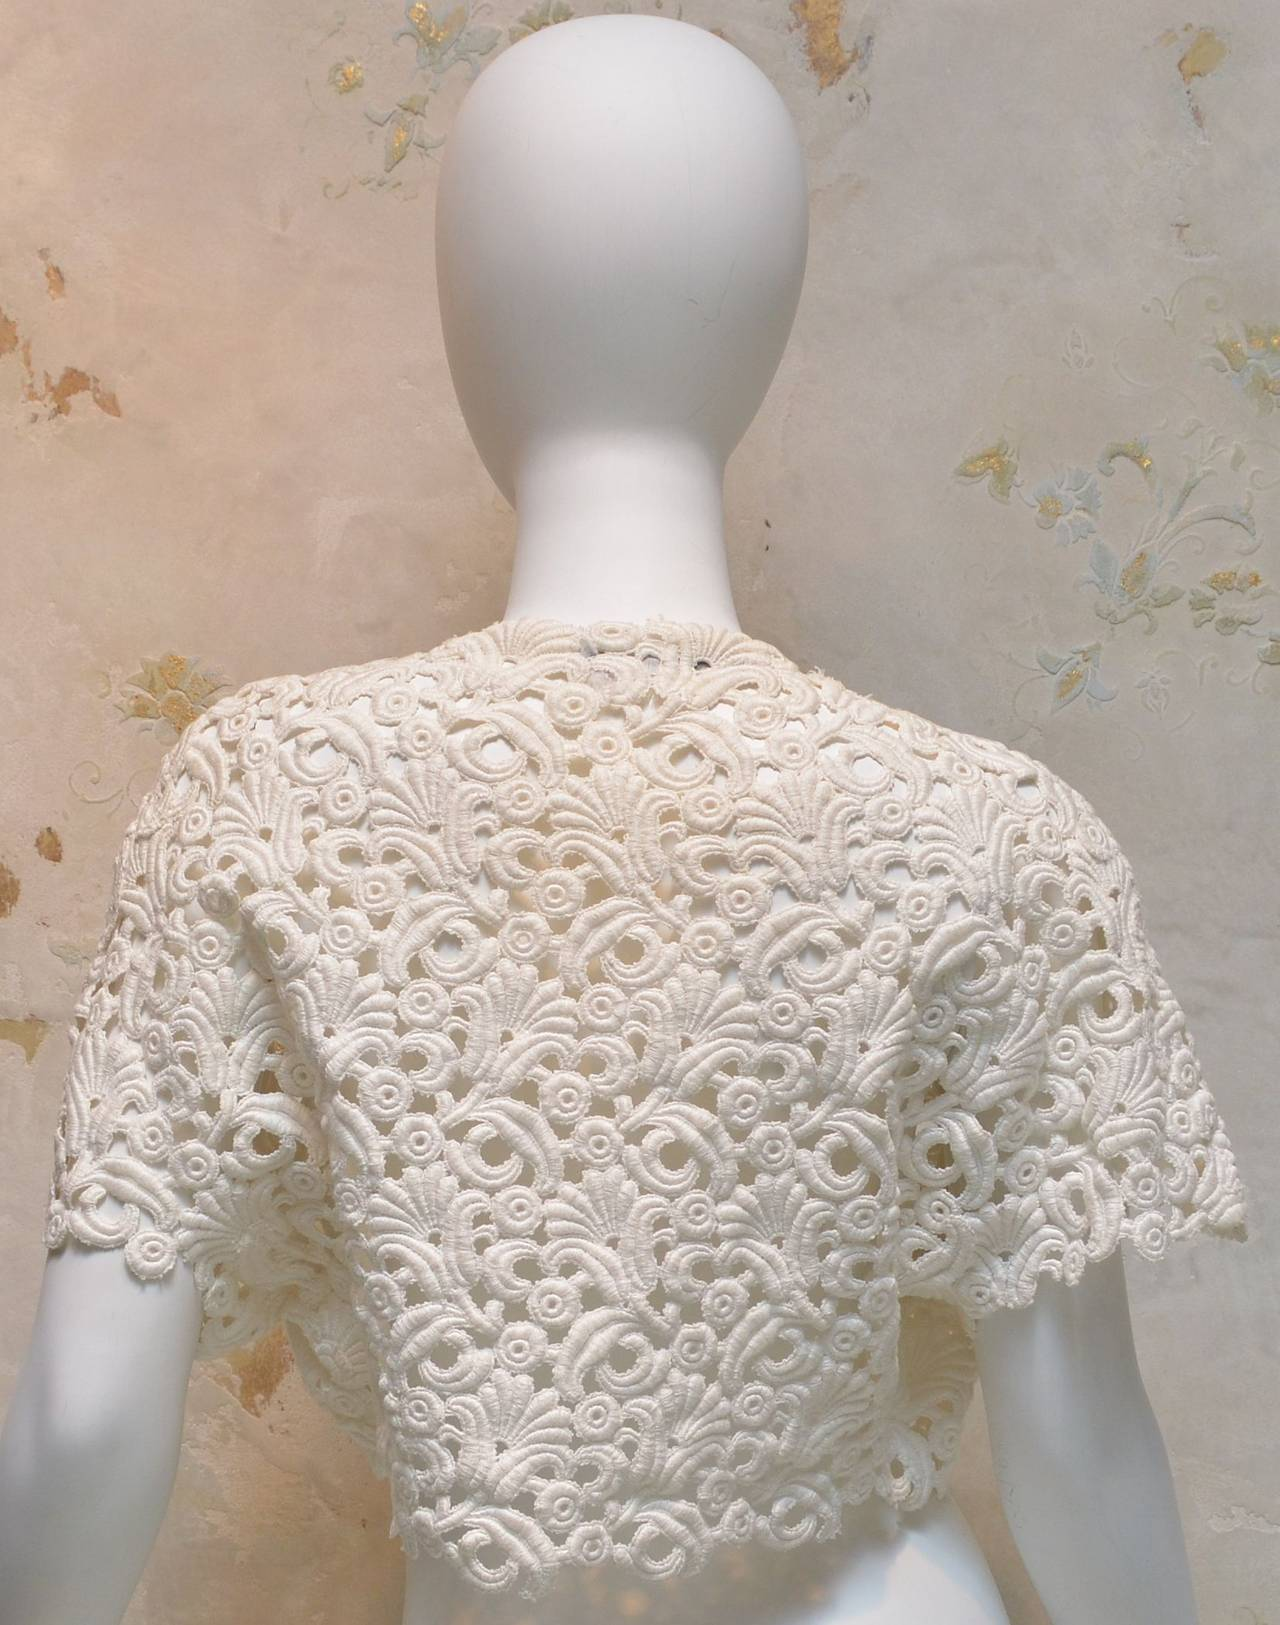 1960's Vintage Chanel Amen Wardy Off White Cream Ivory Lace Bolero Shrug 2